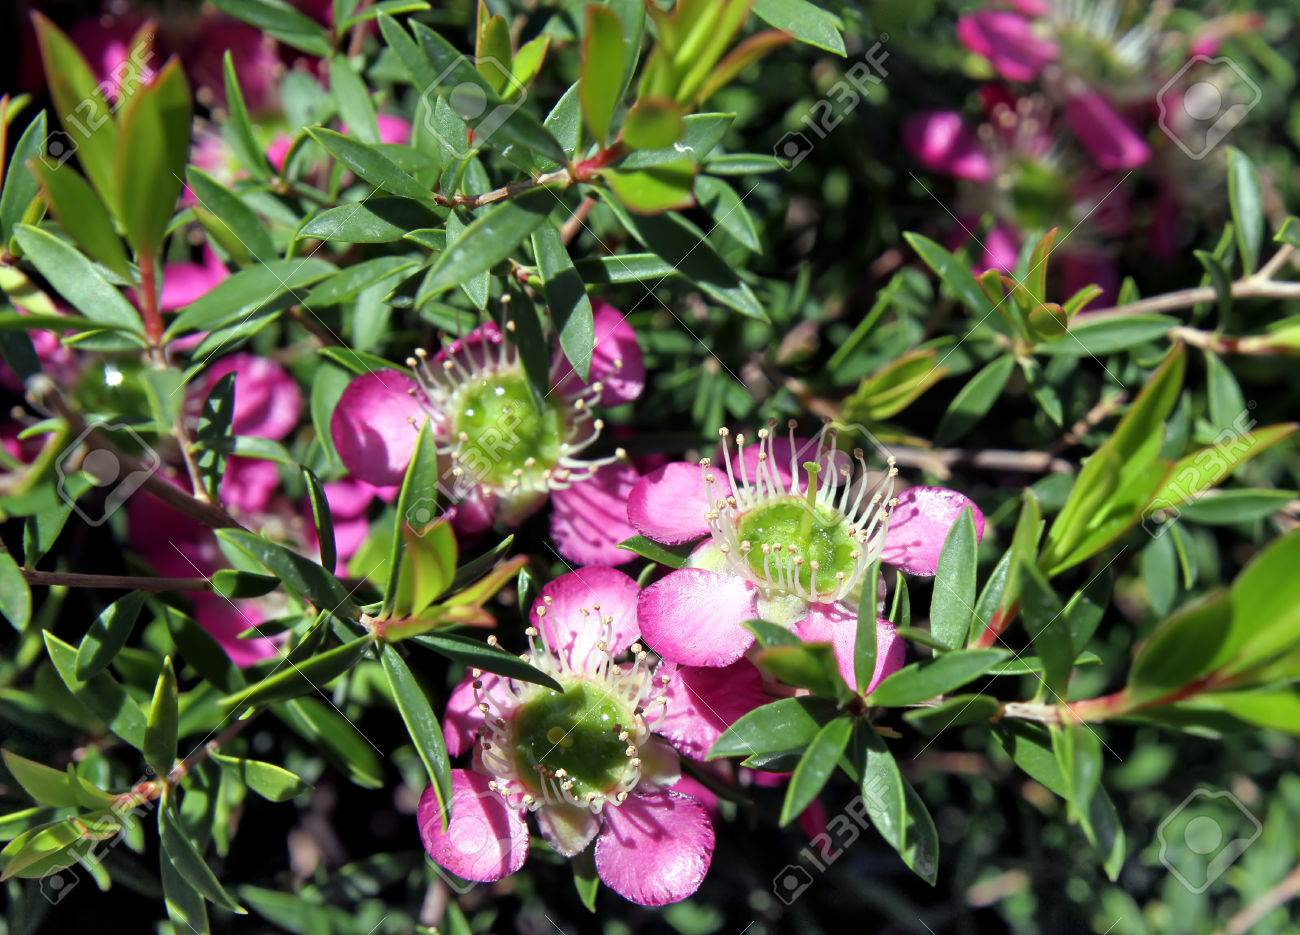 ornamental evergreen shrub leptospermum blooming pink flowers, Natural flower